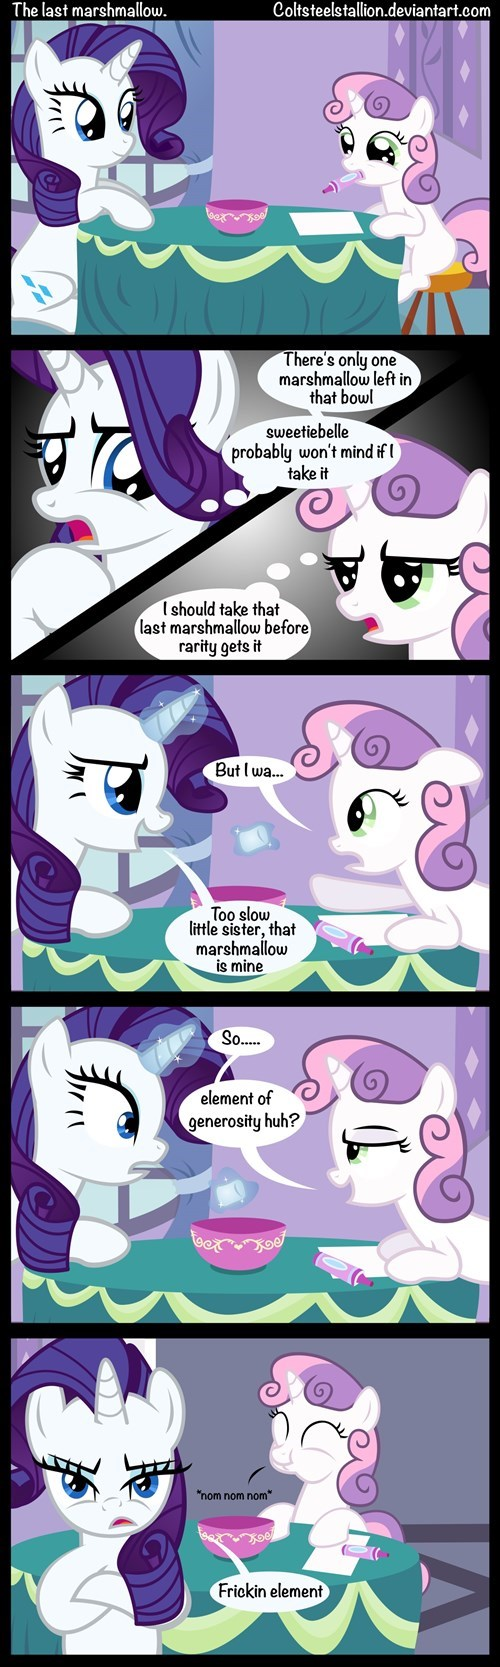 my-little-pony-rarity-element-of-generosity-curse